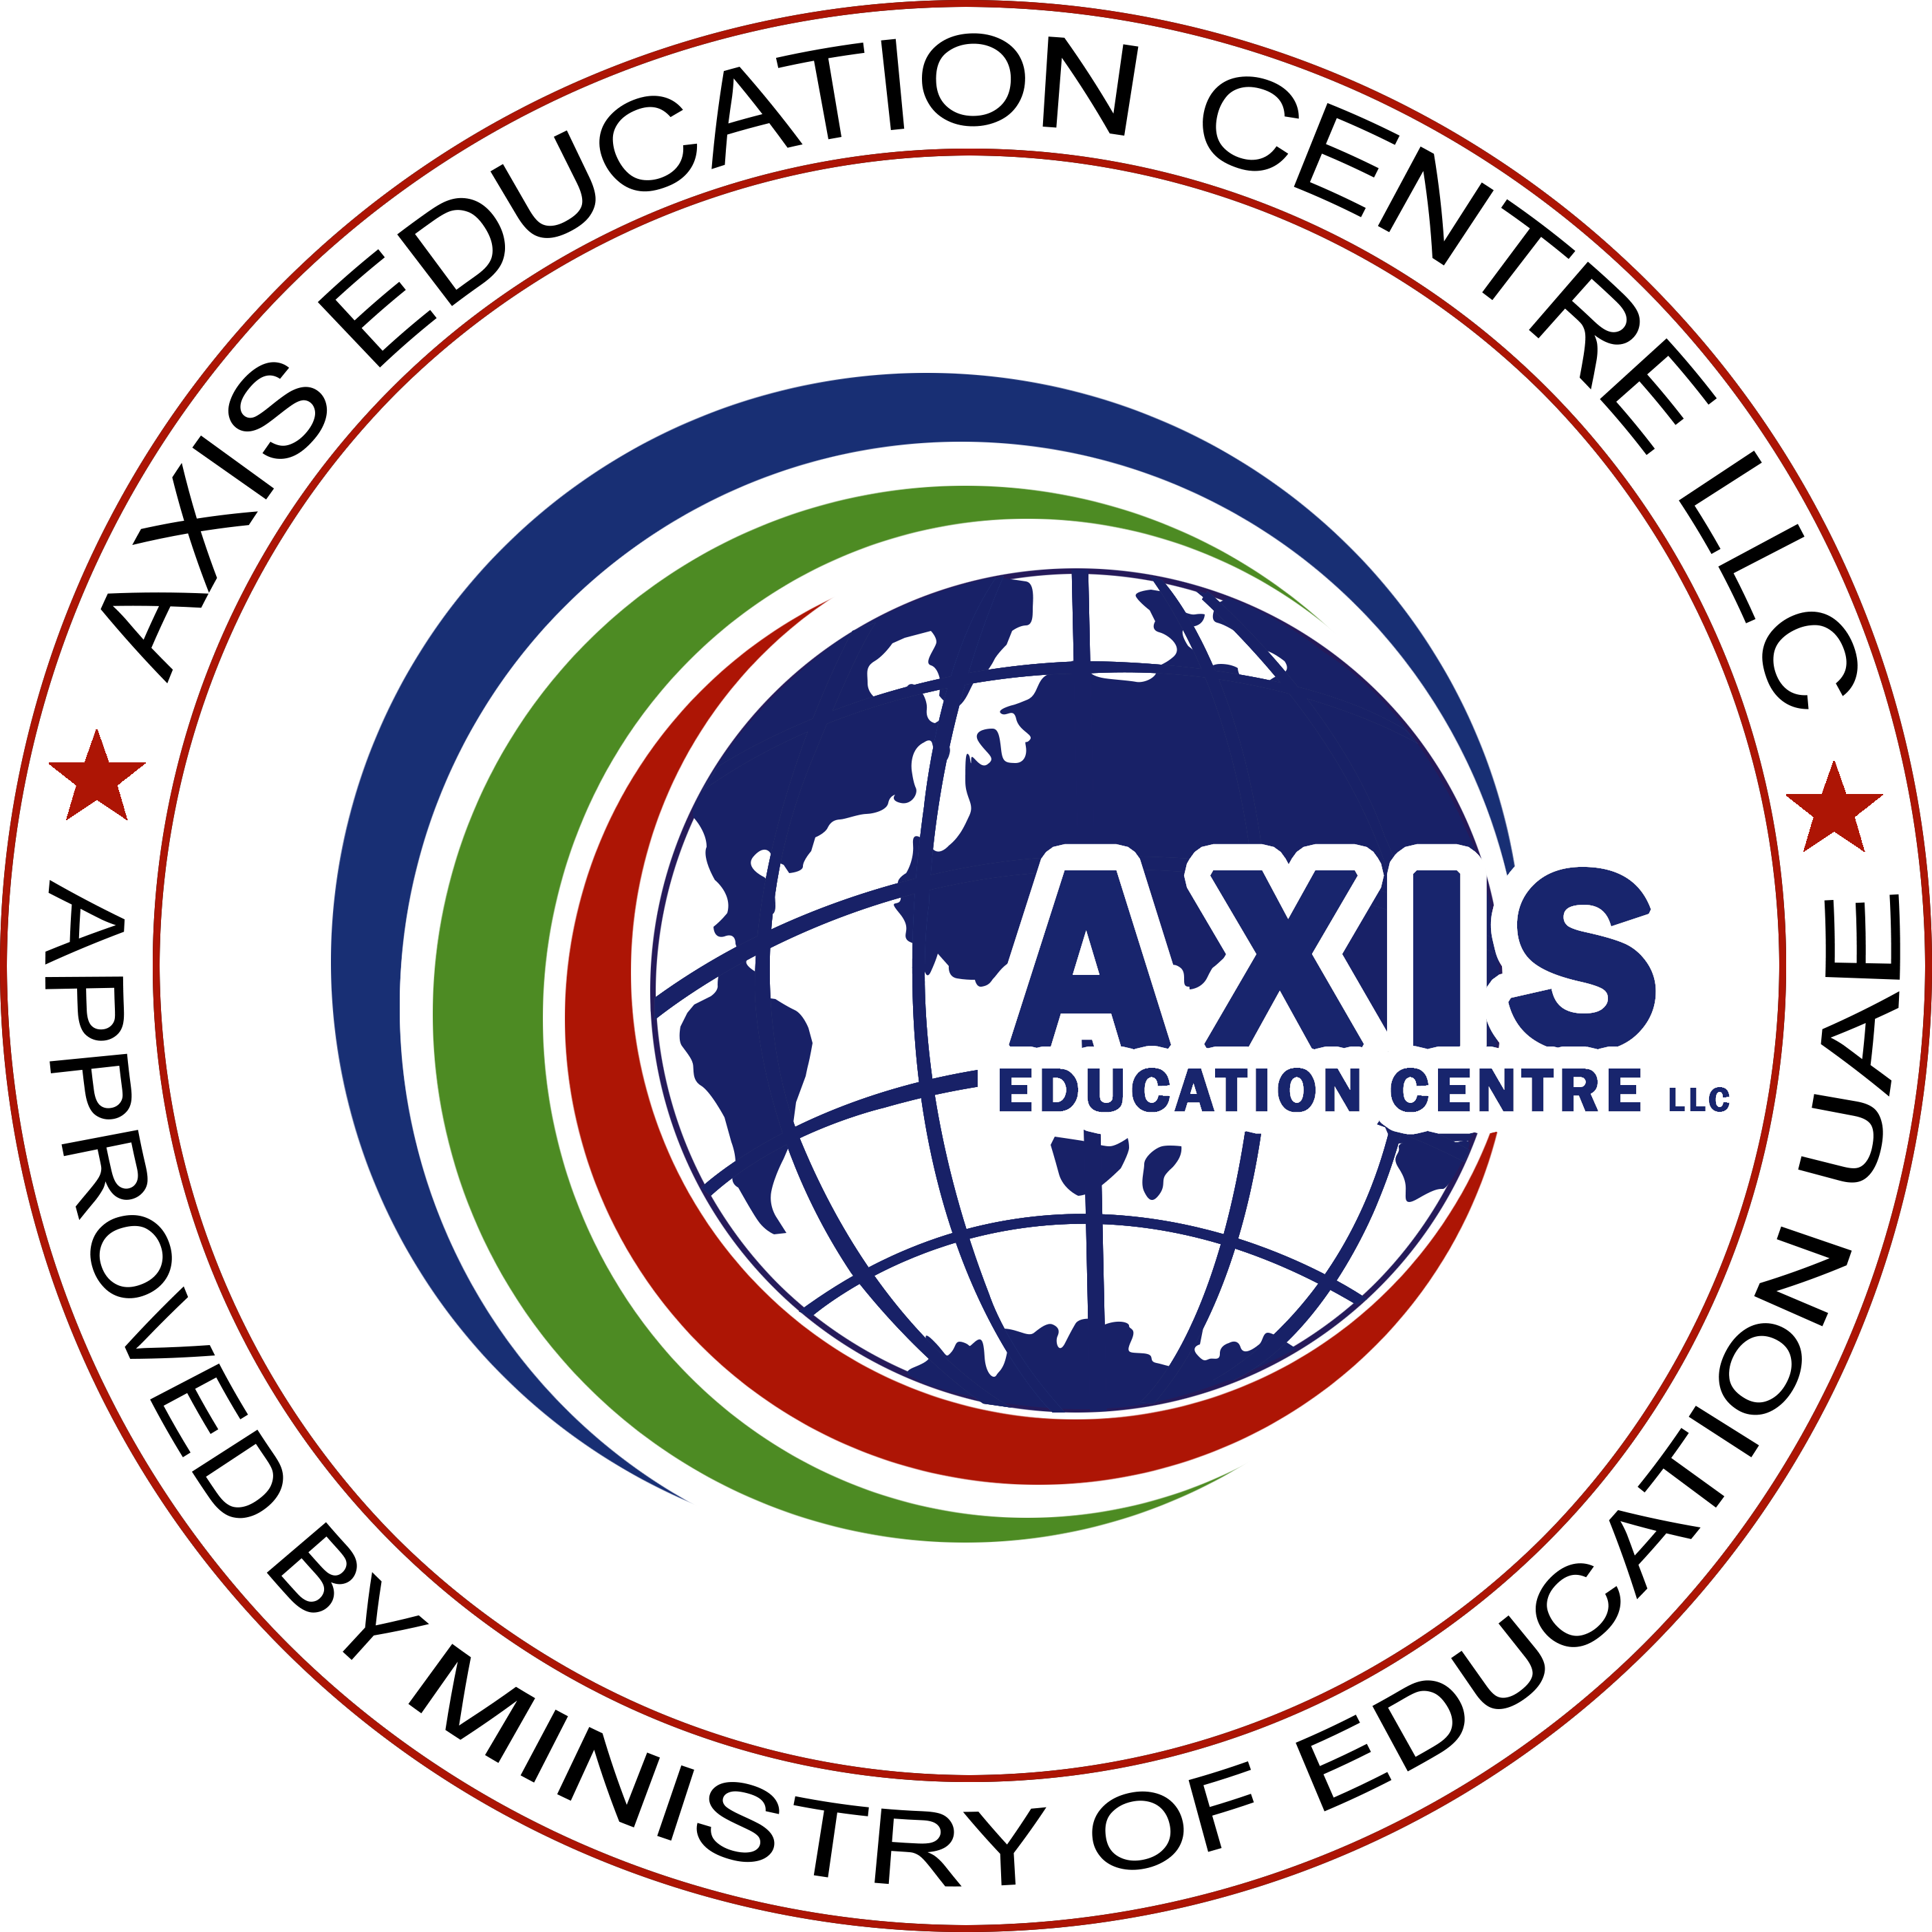 More about AXIS EDUCATION CENTRE   LLL